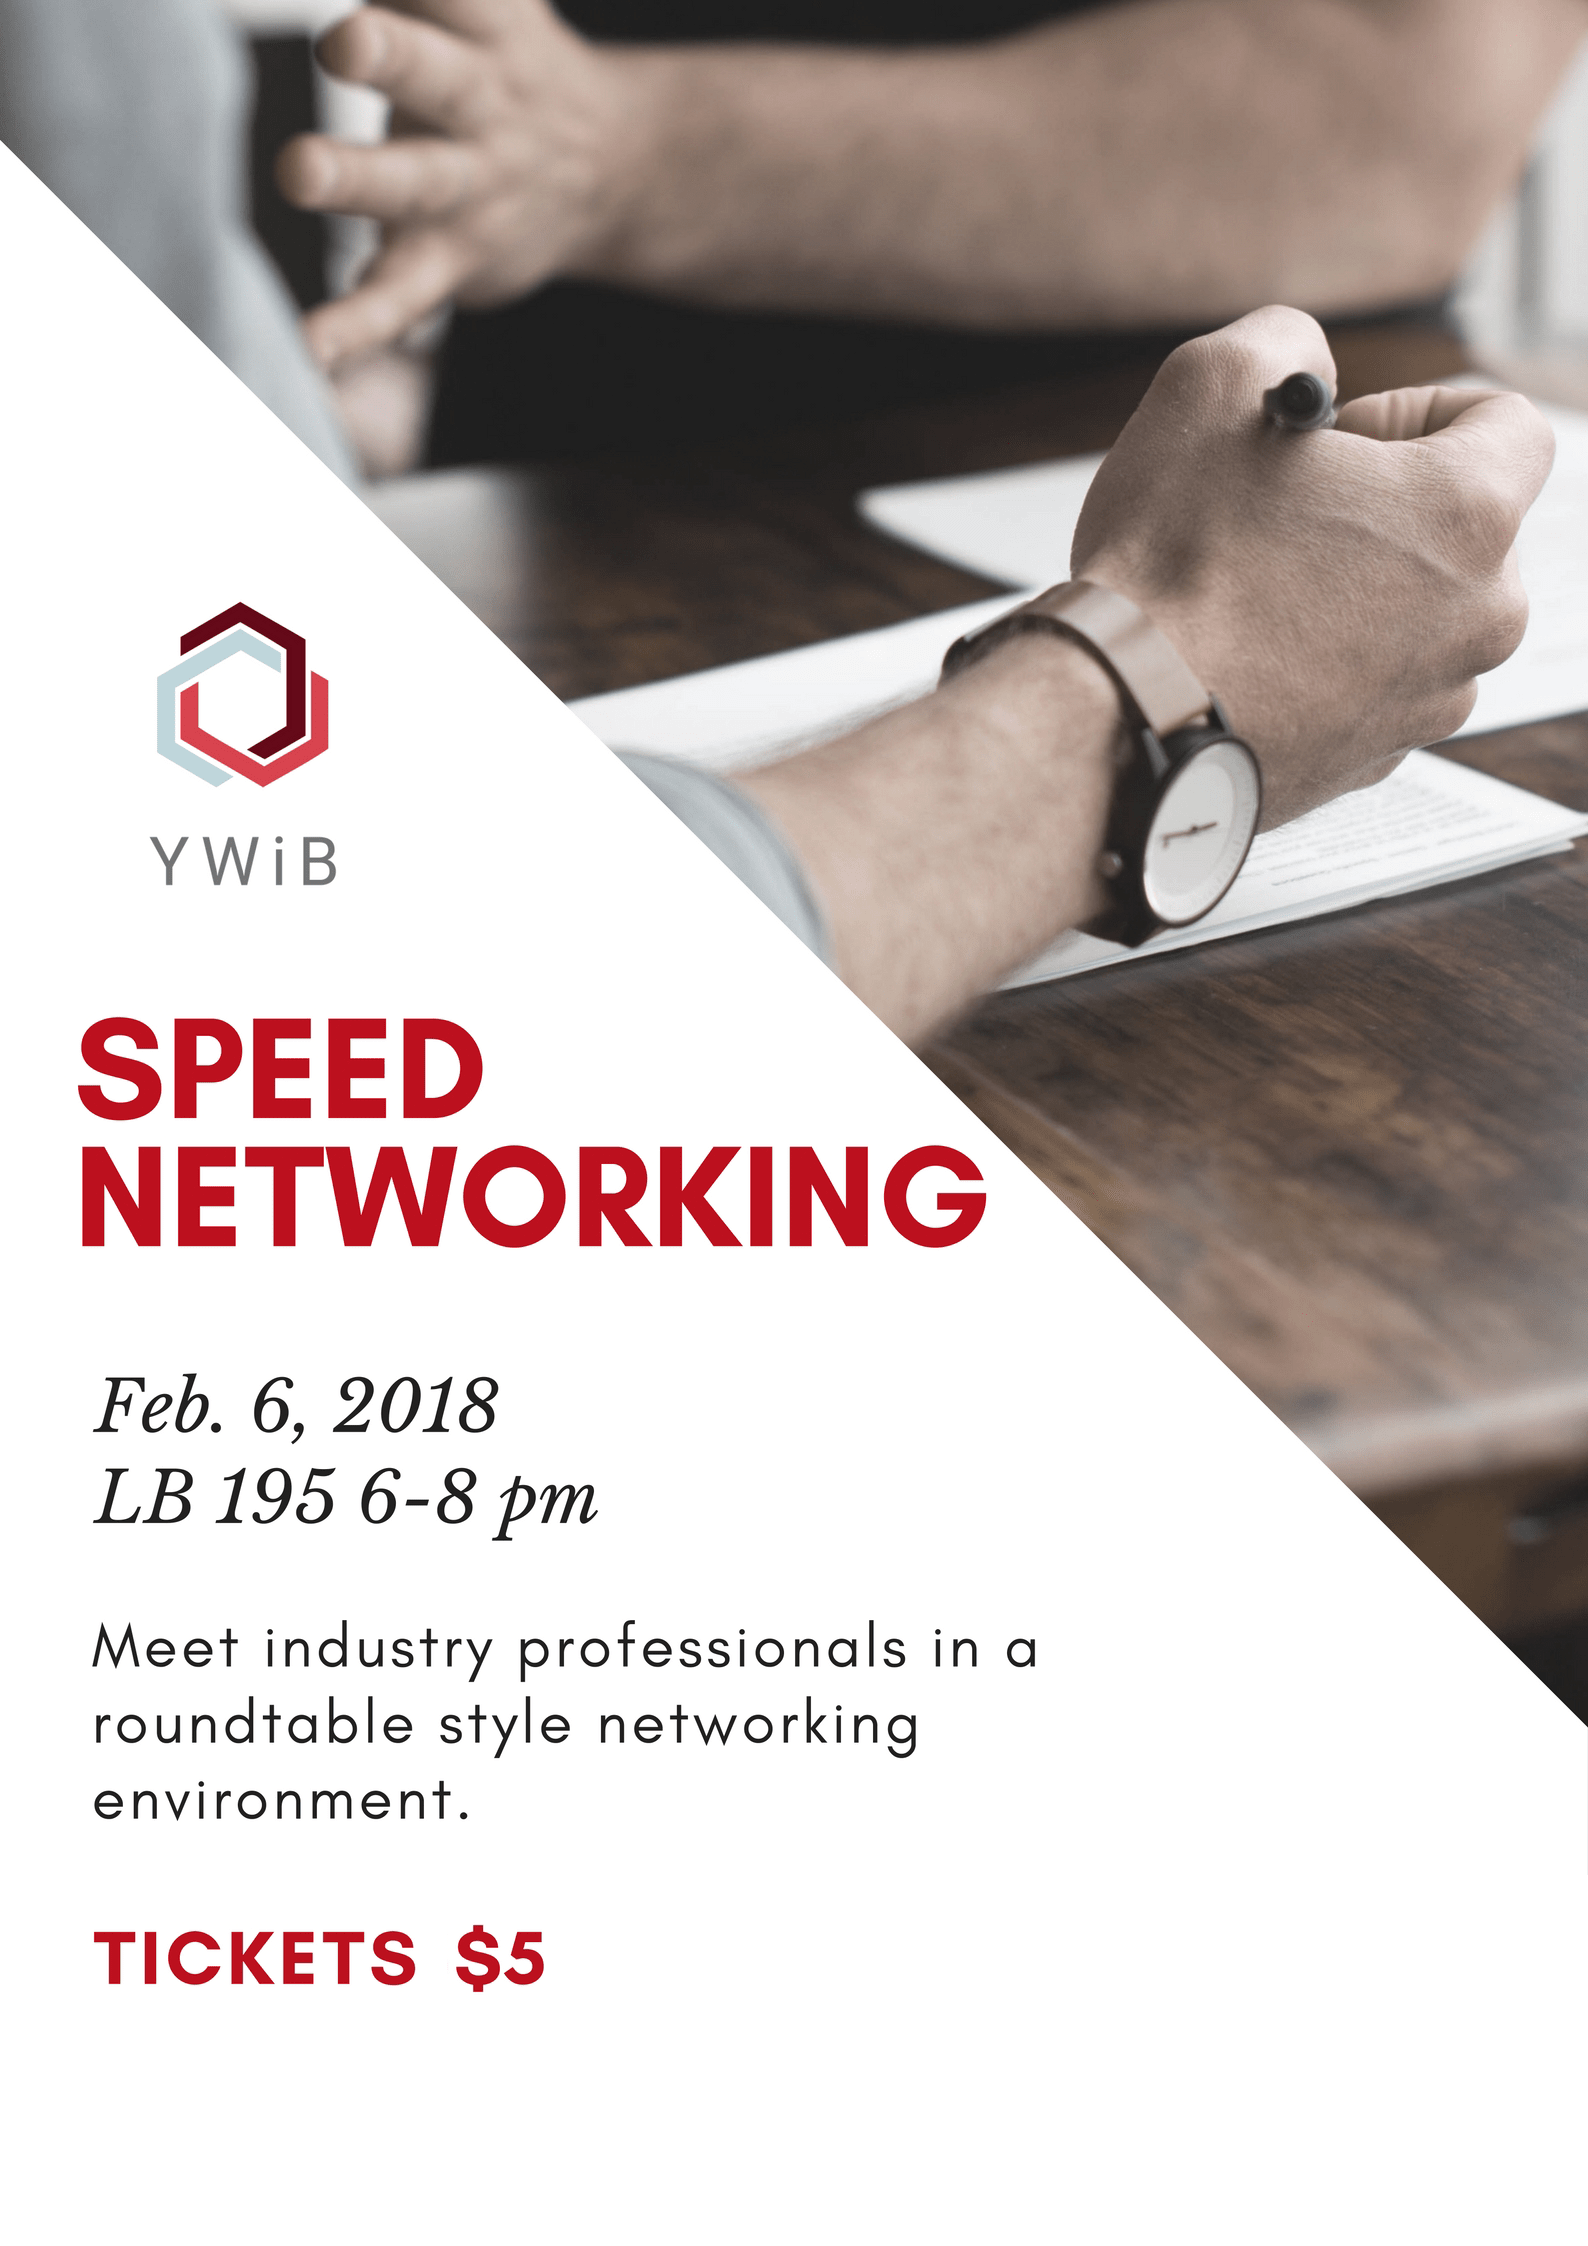 ywib-capilano-speed-networking